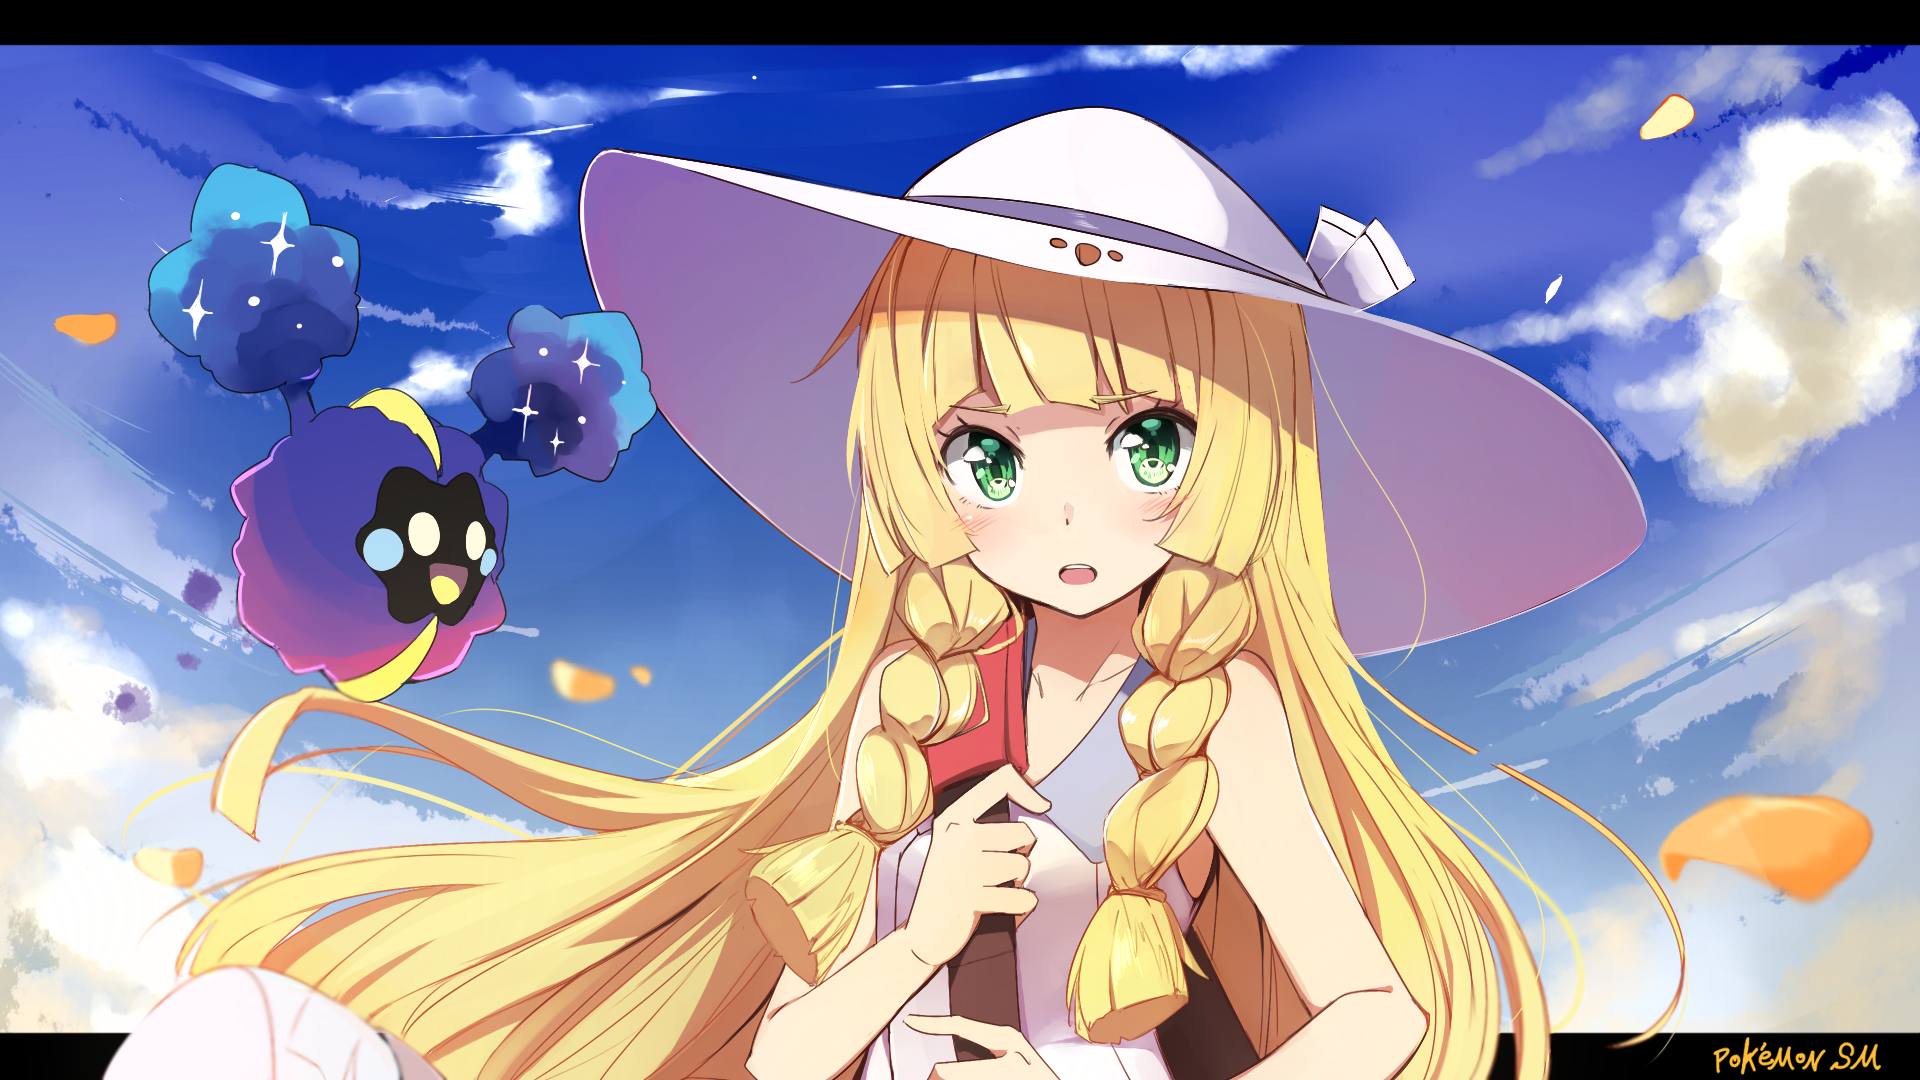 Video Game Pokémon Sun And Moon Lillie (Pokemon) Cosmog